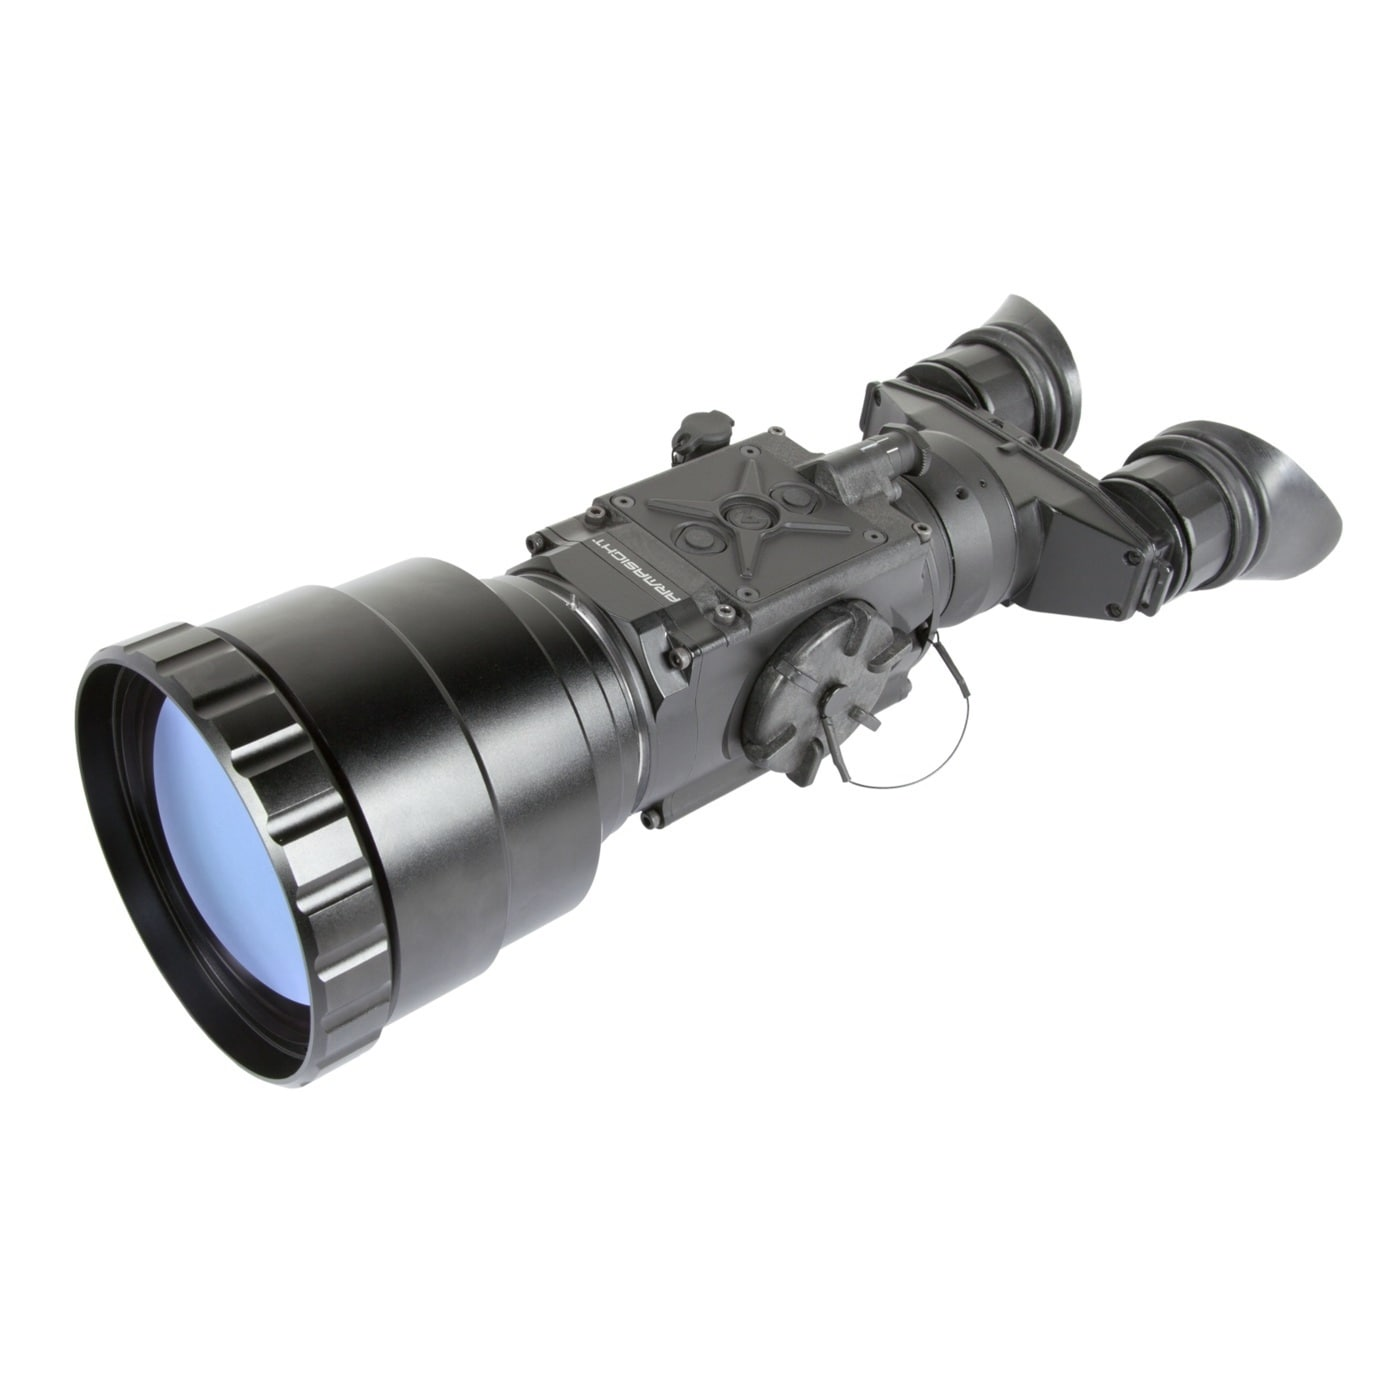 Armasight Helios 640 HD 3-24x75 (30 Hz) Thermal IMaging Bi-Ocular, FLIR Tau 2 640x512 (17 m) 30Hz Core, 75mm Lens by Overstock